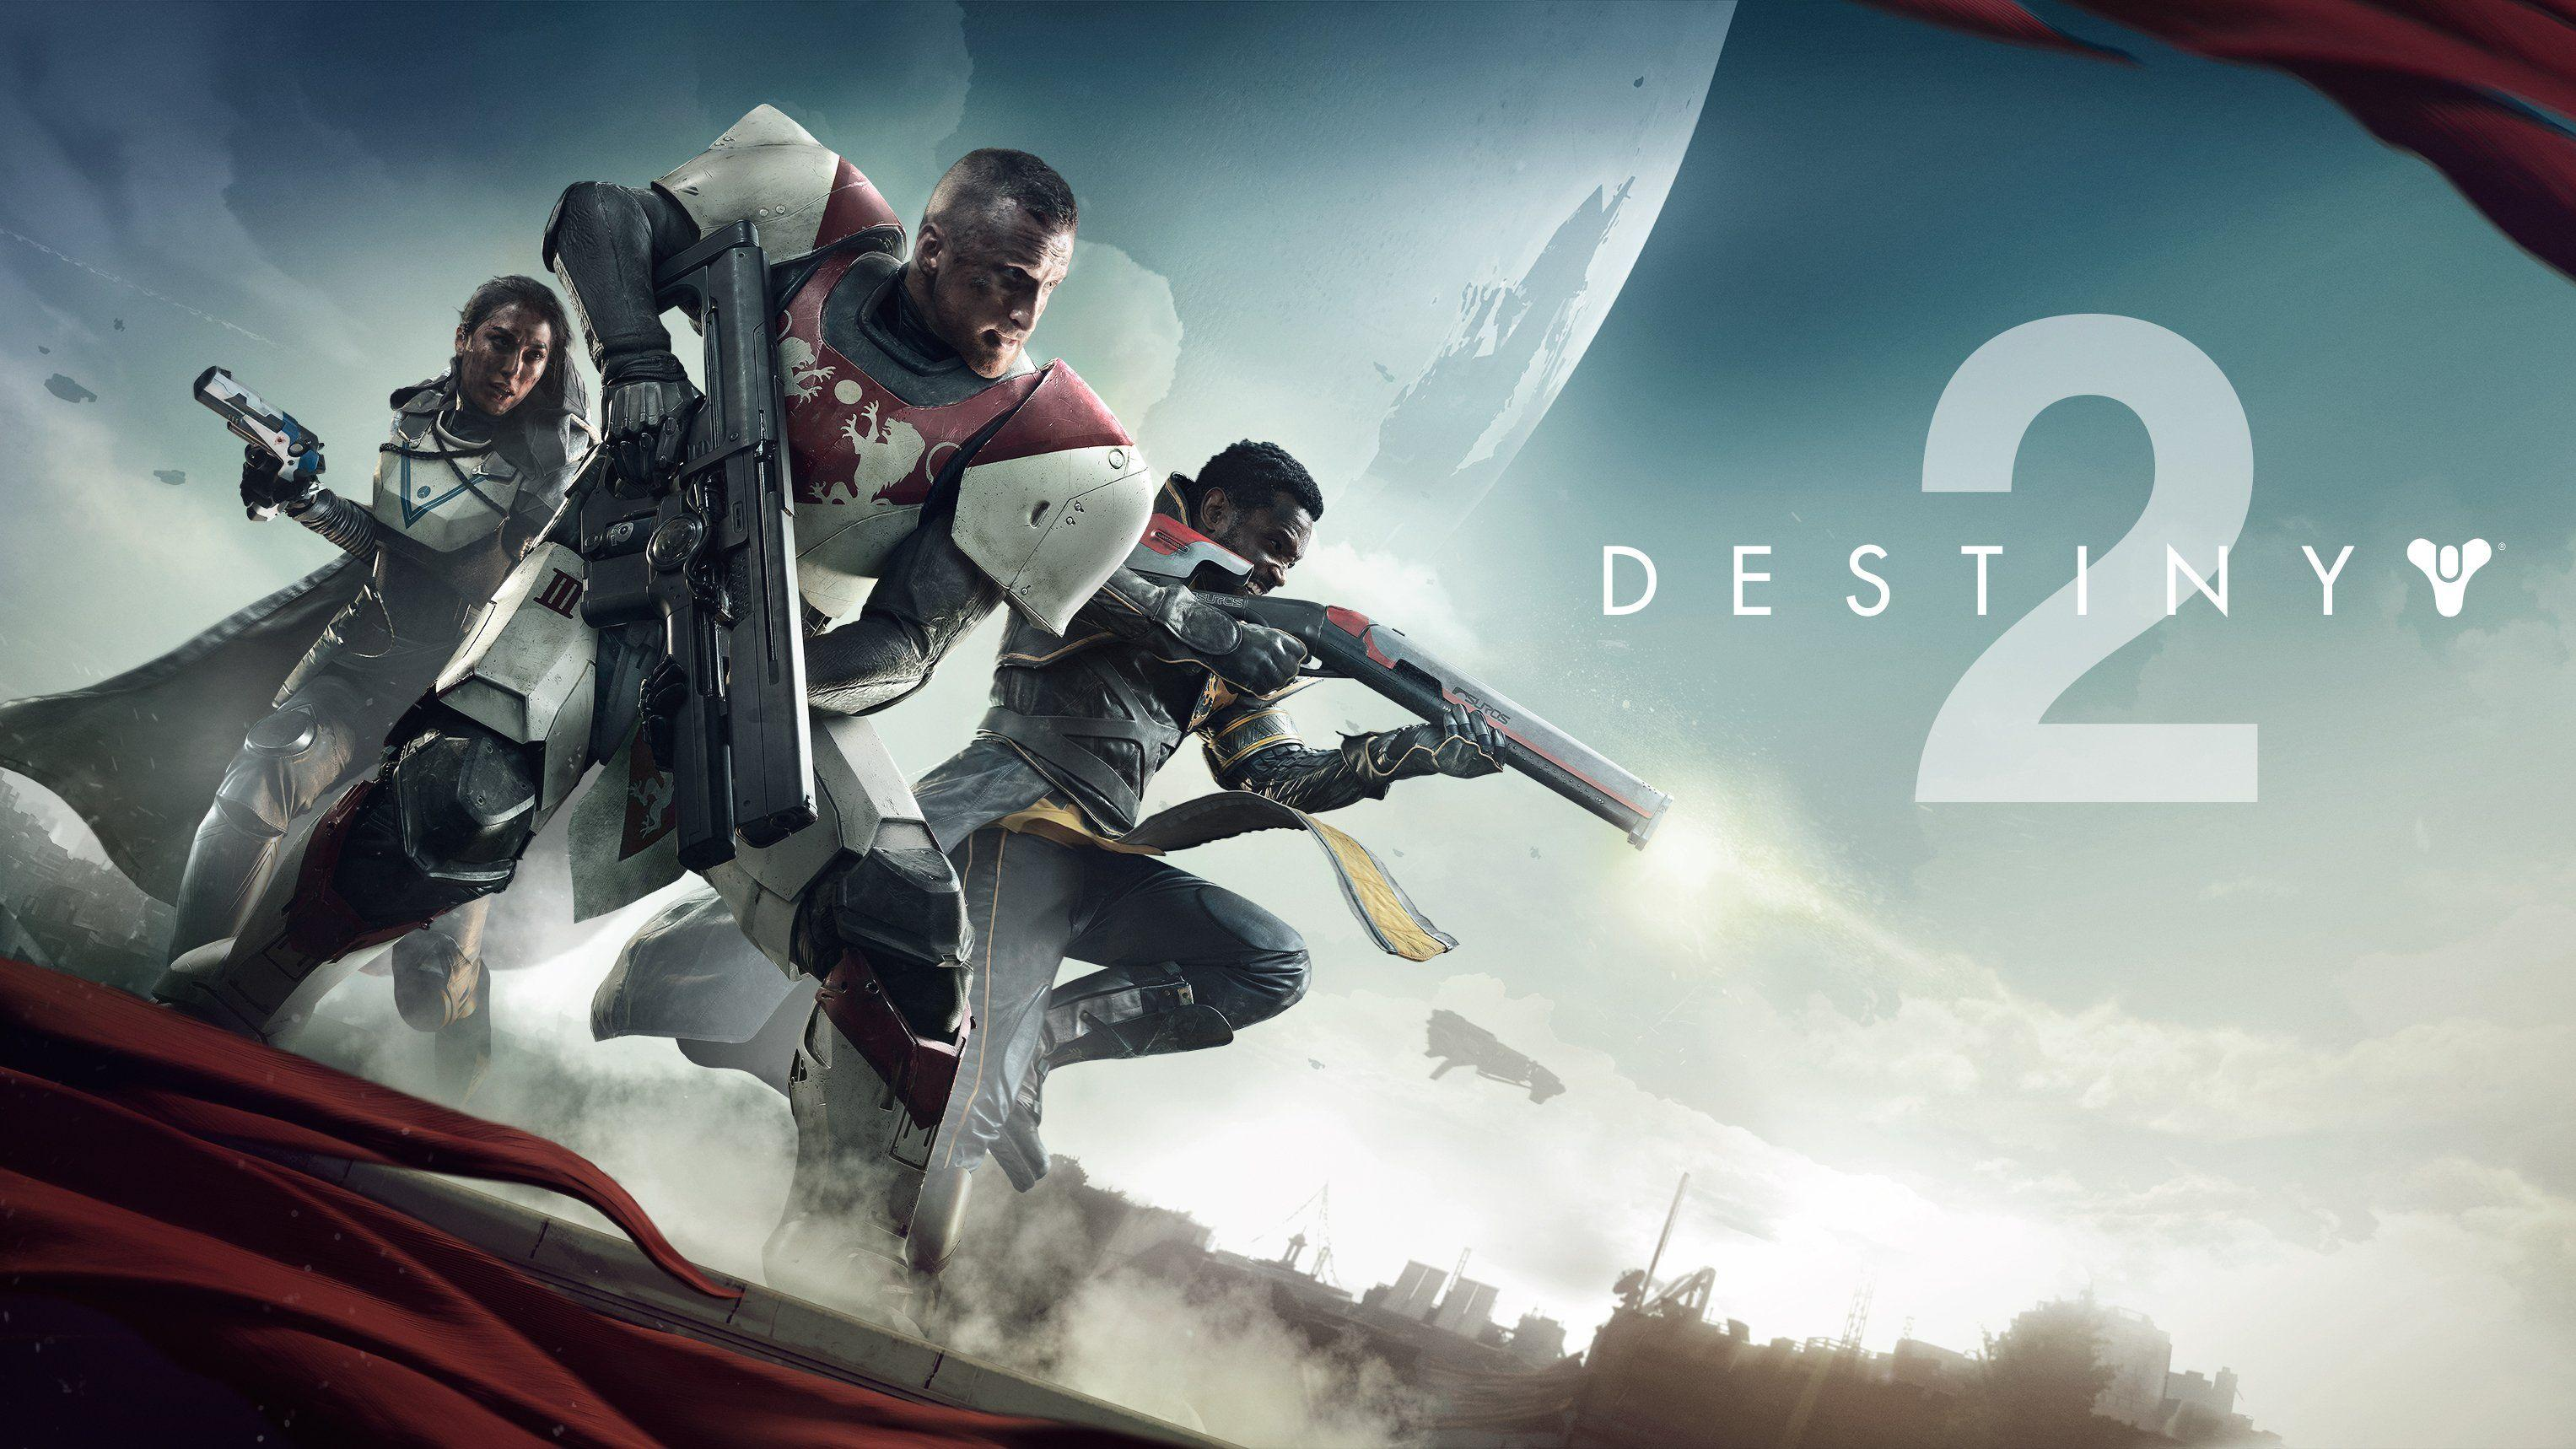 31 Destiny 2 HD Wallpapers